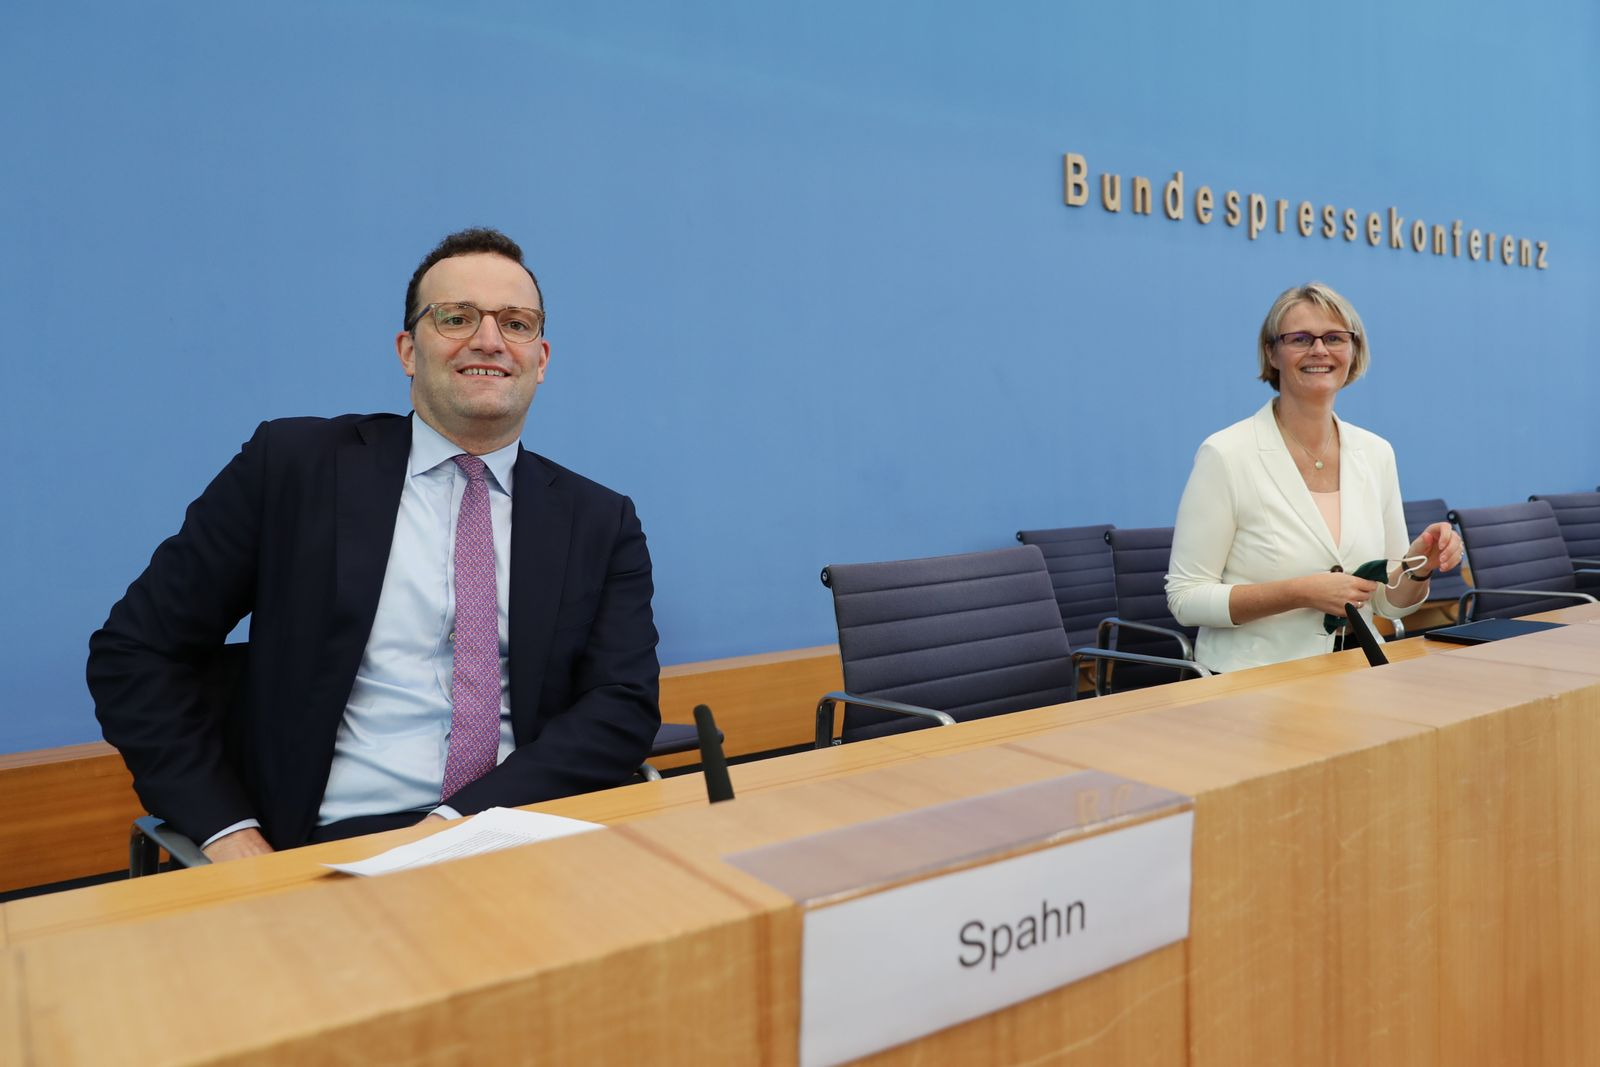 German Ministers Hold Press Conference On Corona Vaccines